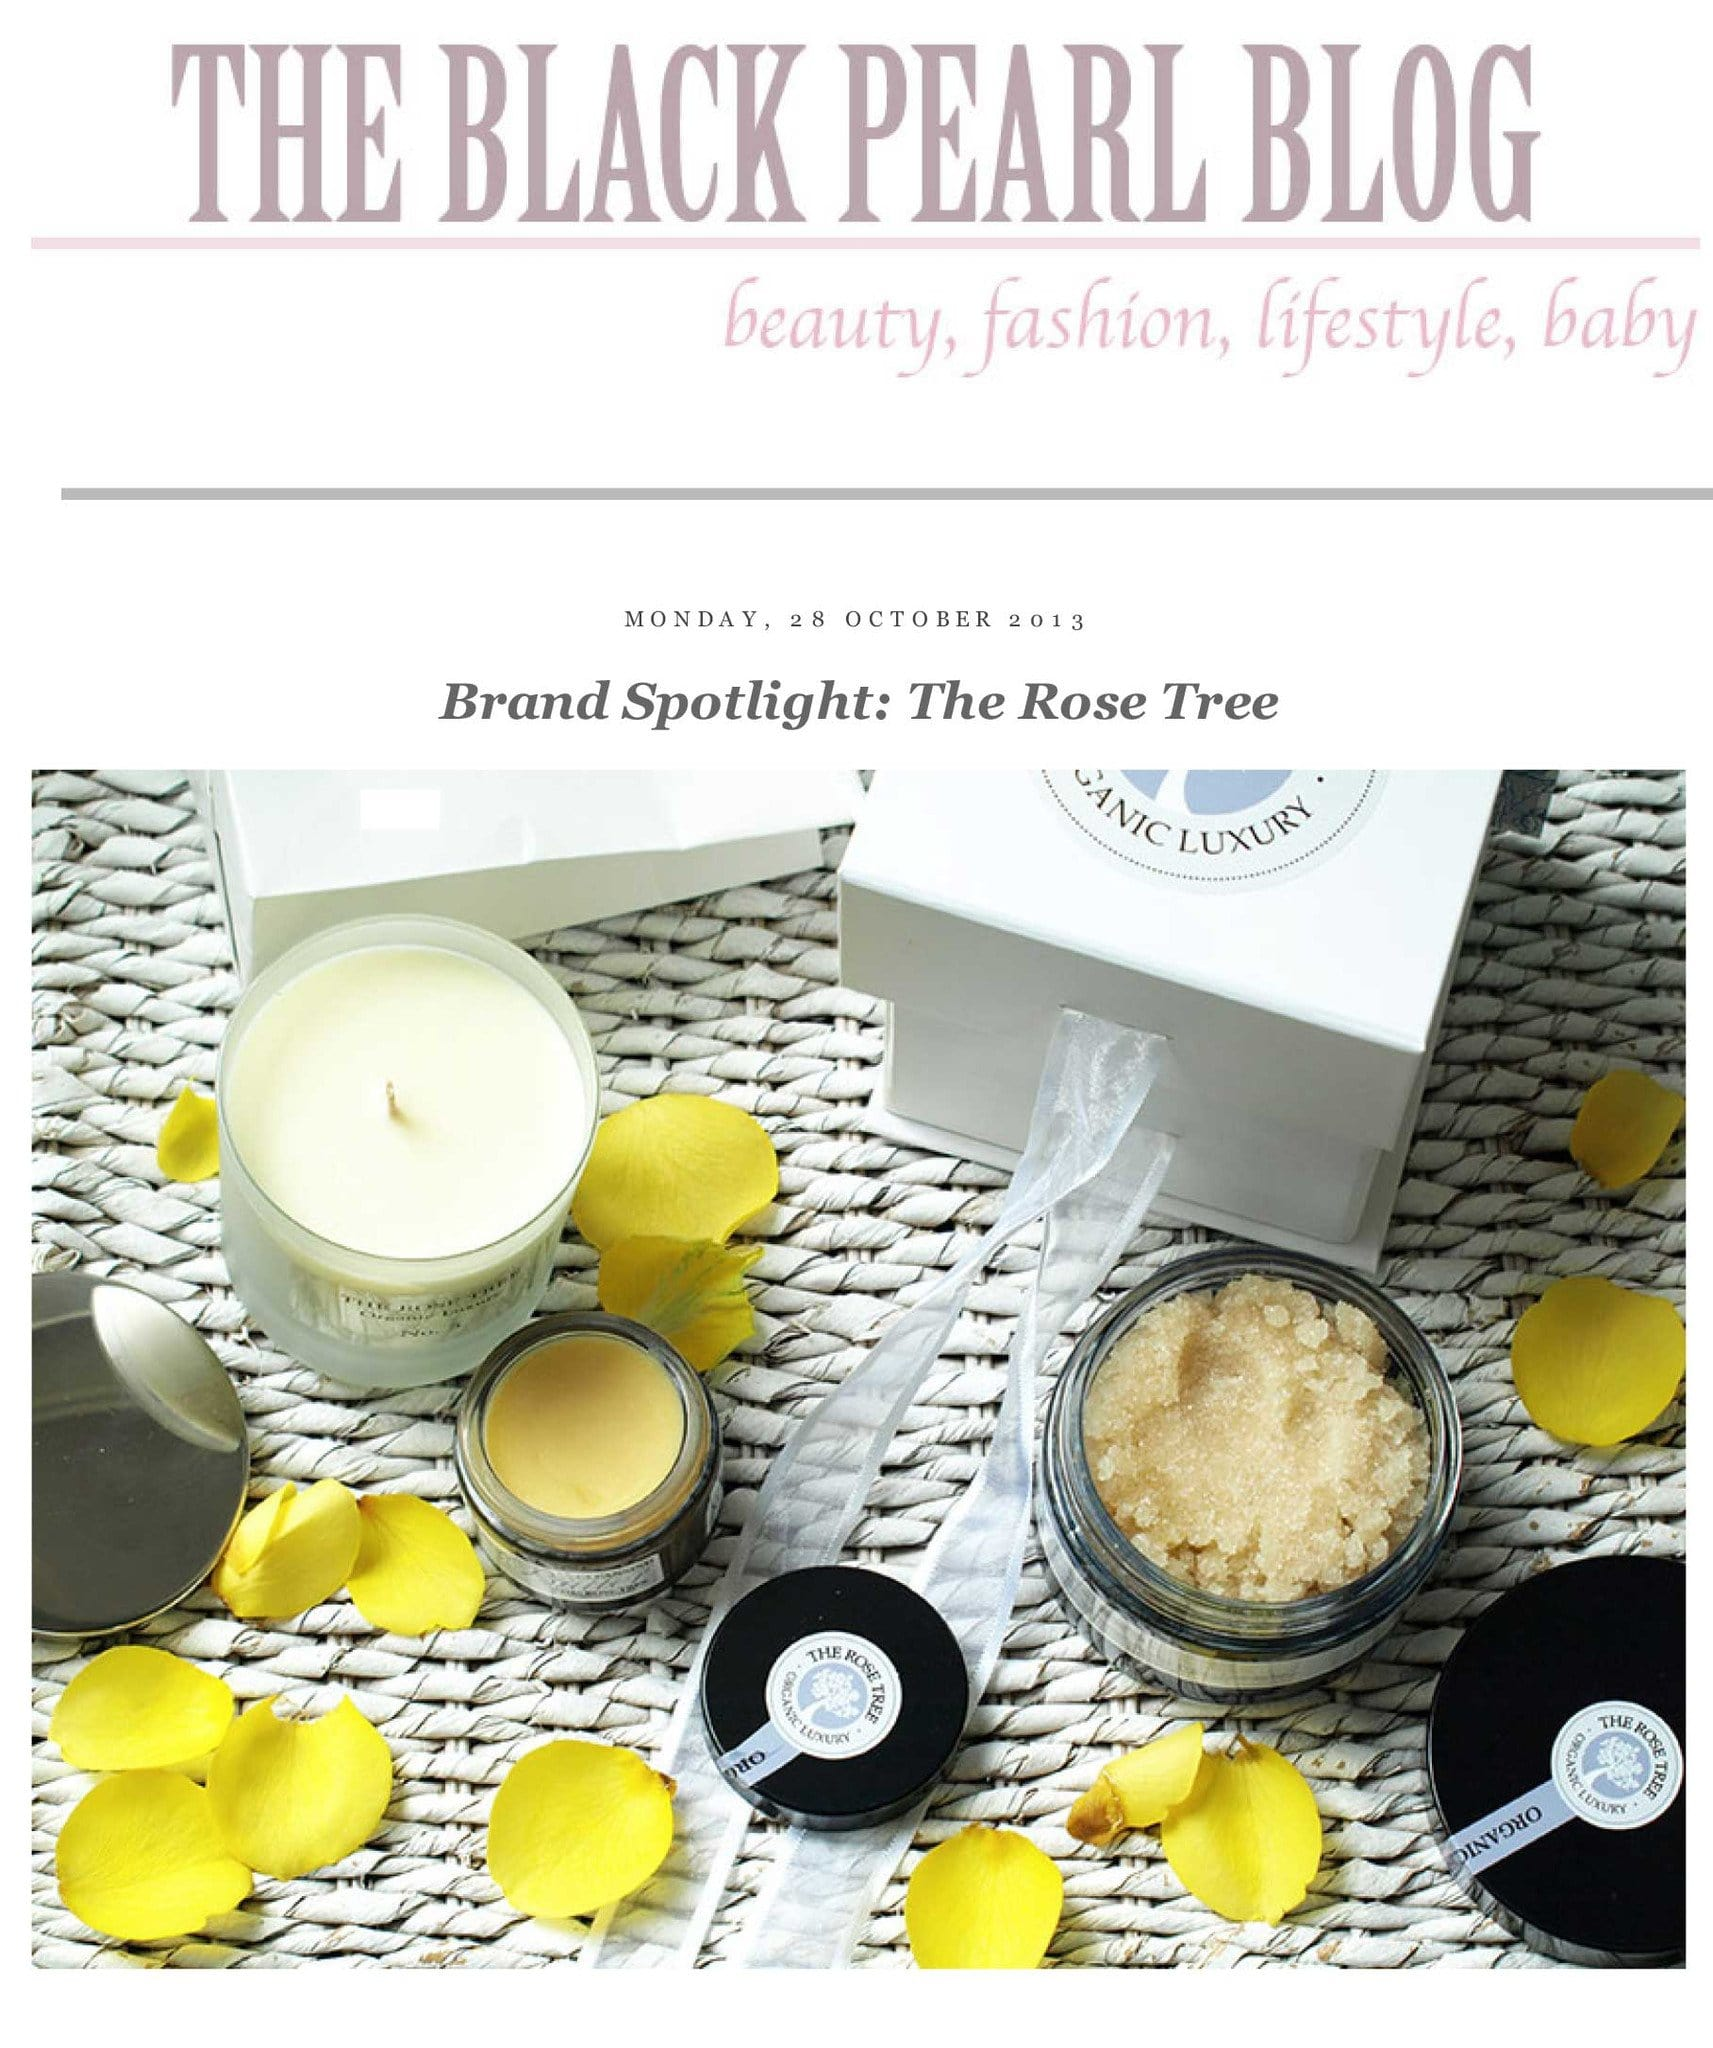 Brand Spotlight  - The Black Pearl Blog